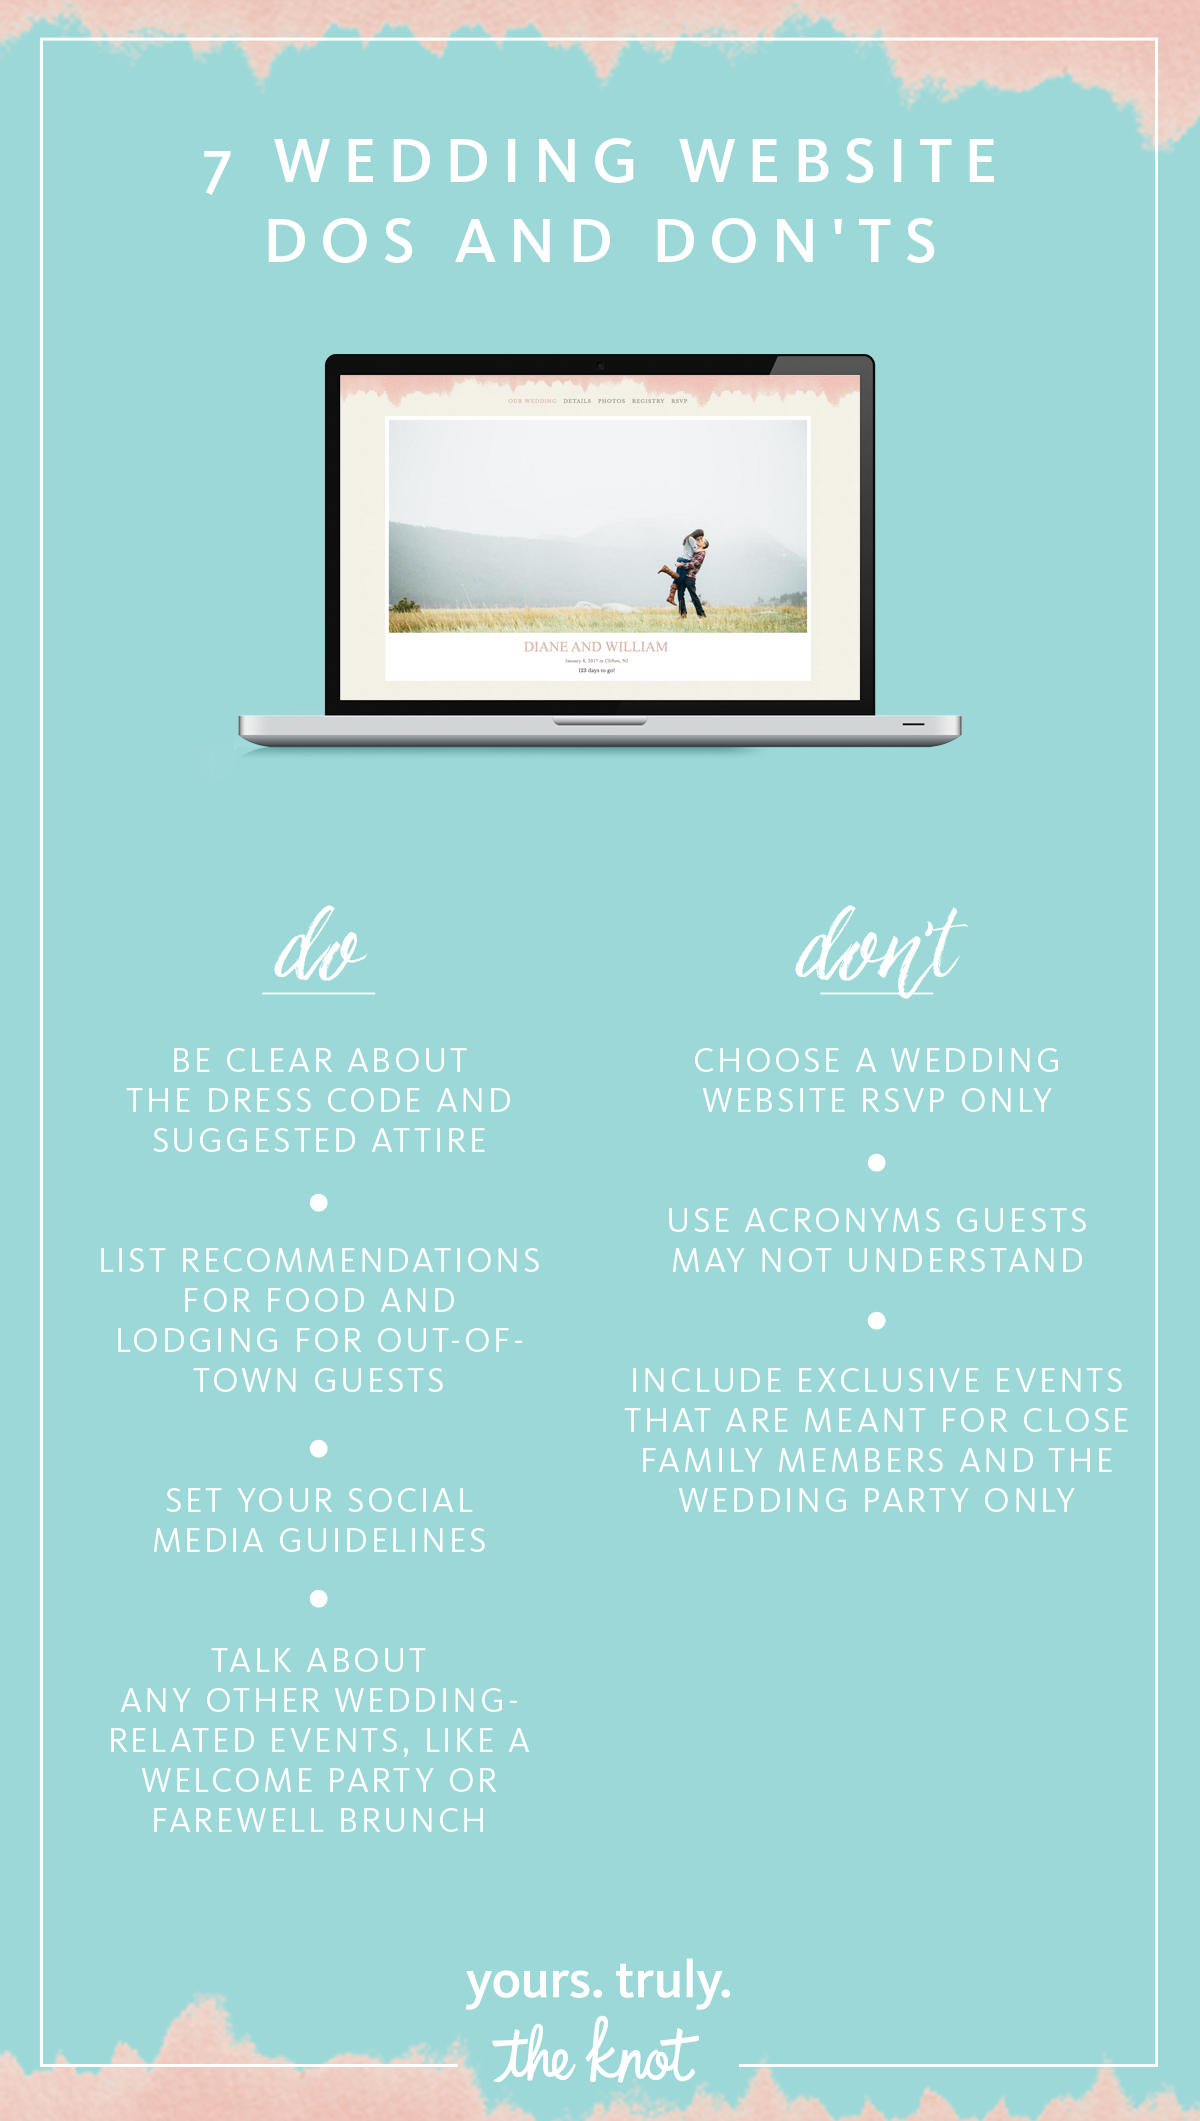 Your Wedding Website Is A Tool Meant For Keeping Guests Up To Date And Aware Of What Going On Leading The Day Make Perfect